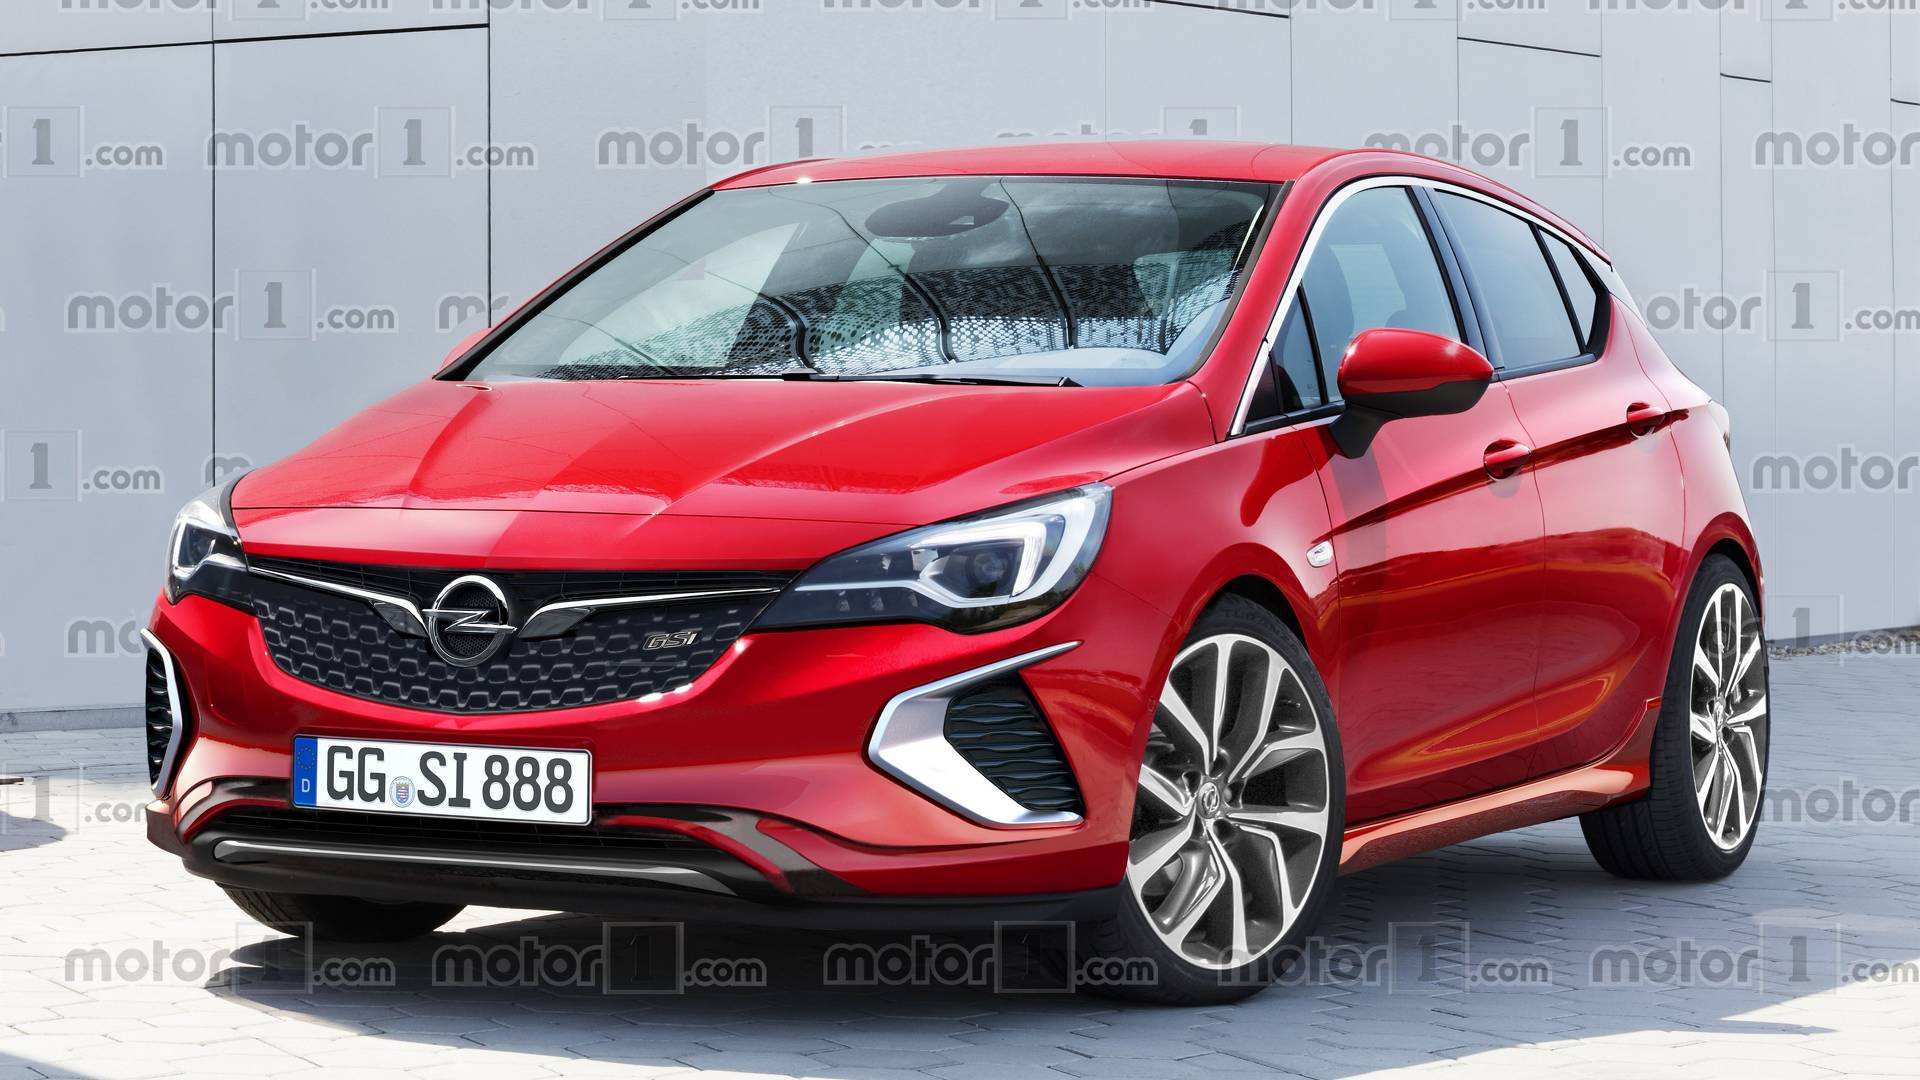 68 Best Review Opel Gsi 2020 Exterior with Opel Gsi 2020